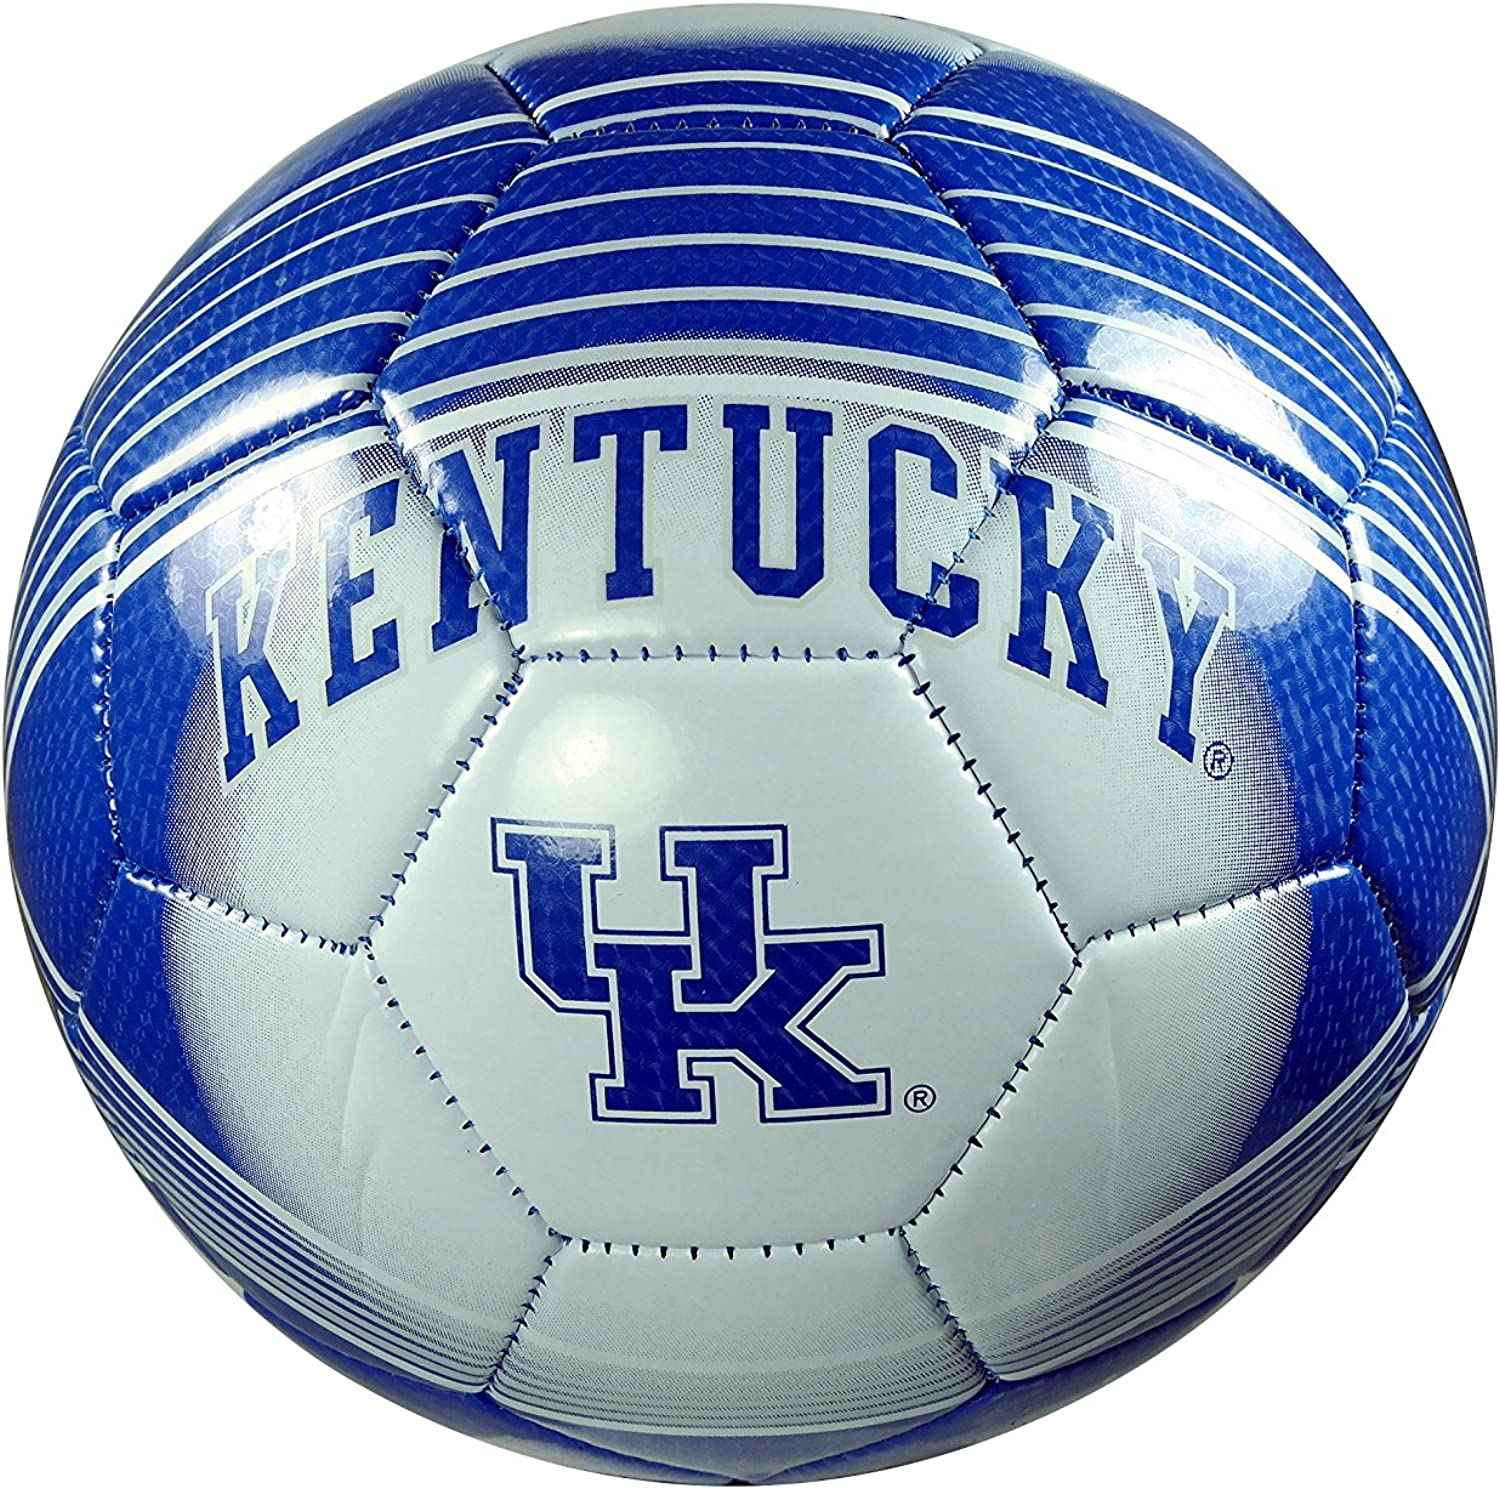 University of Kentucky Official Licensed Soccer Ball Size 5